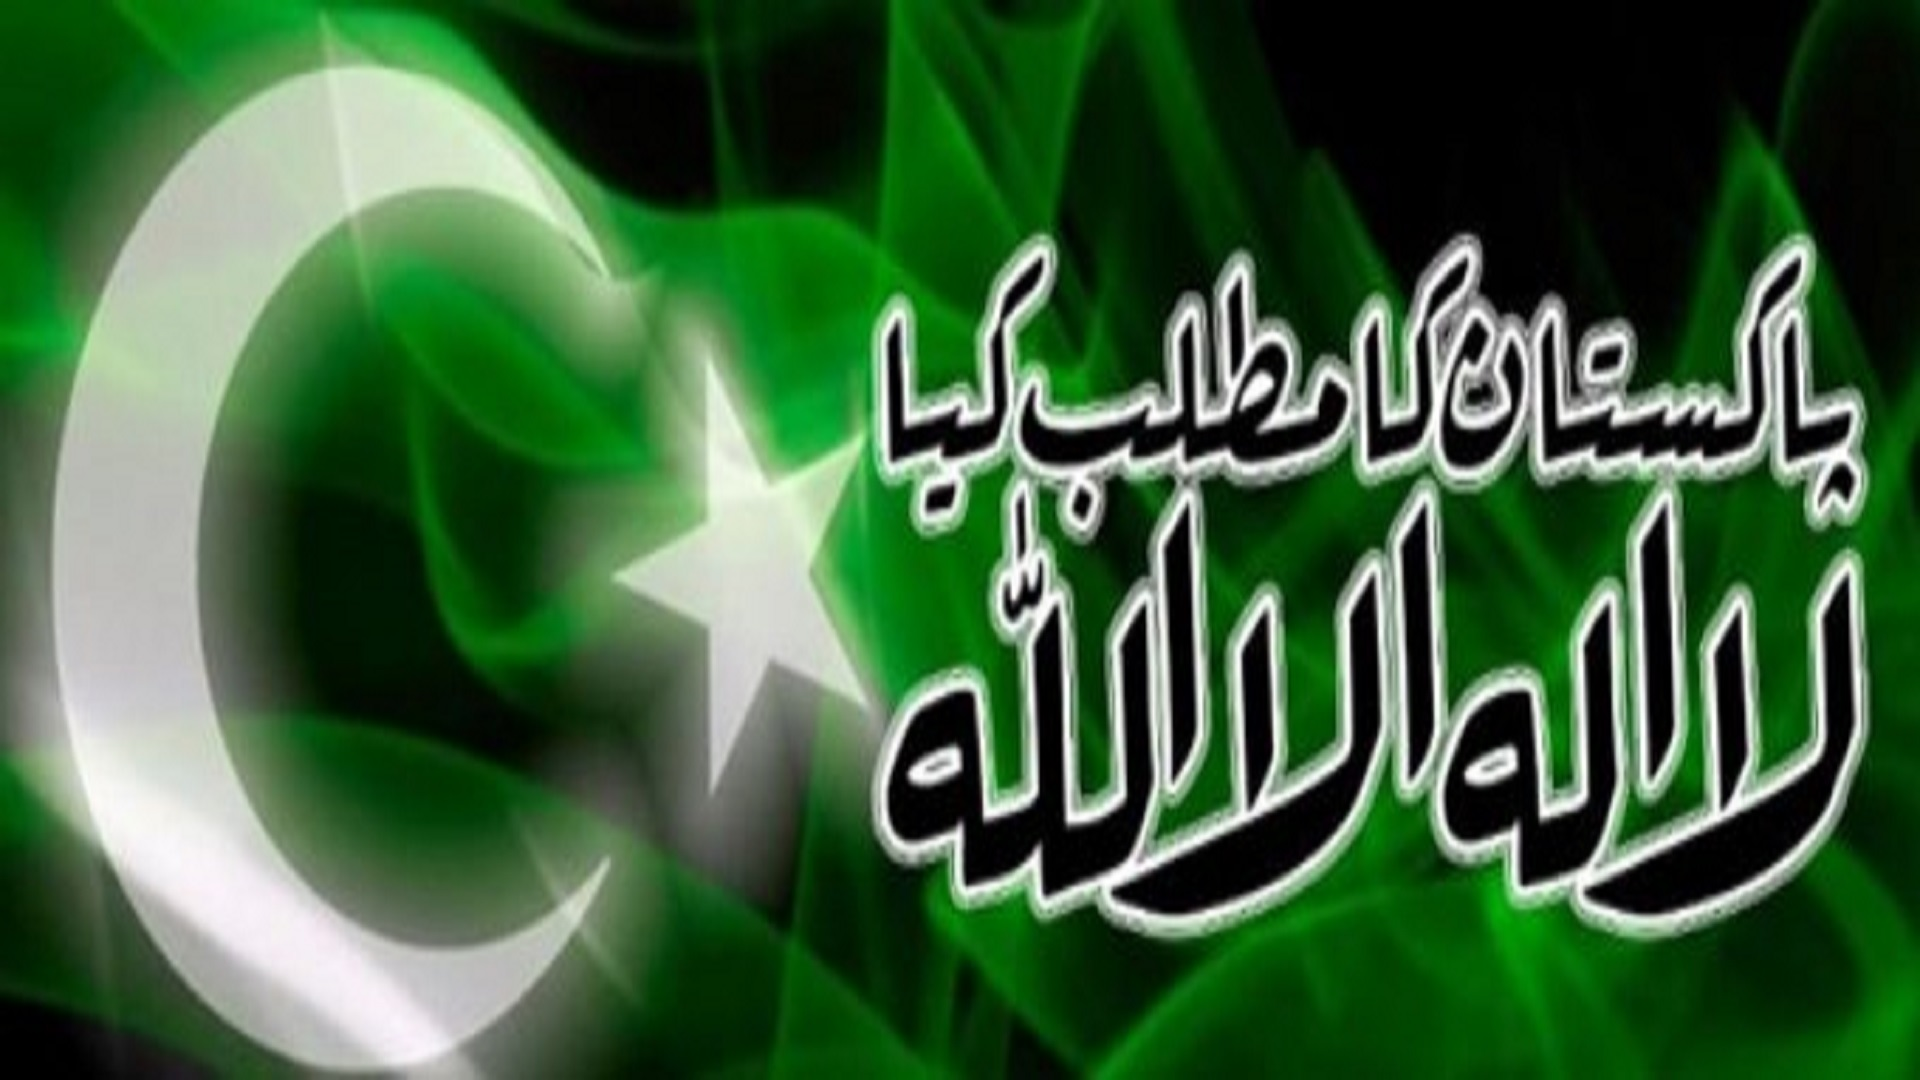 Best Pakistani Wallpaper